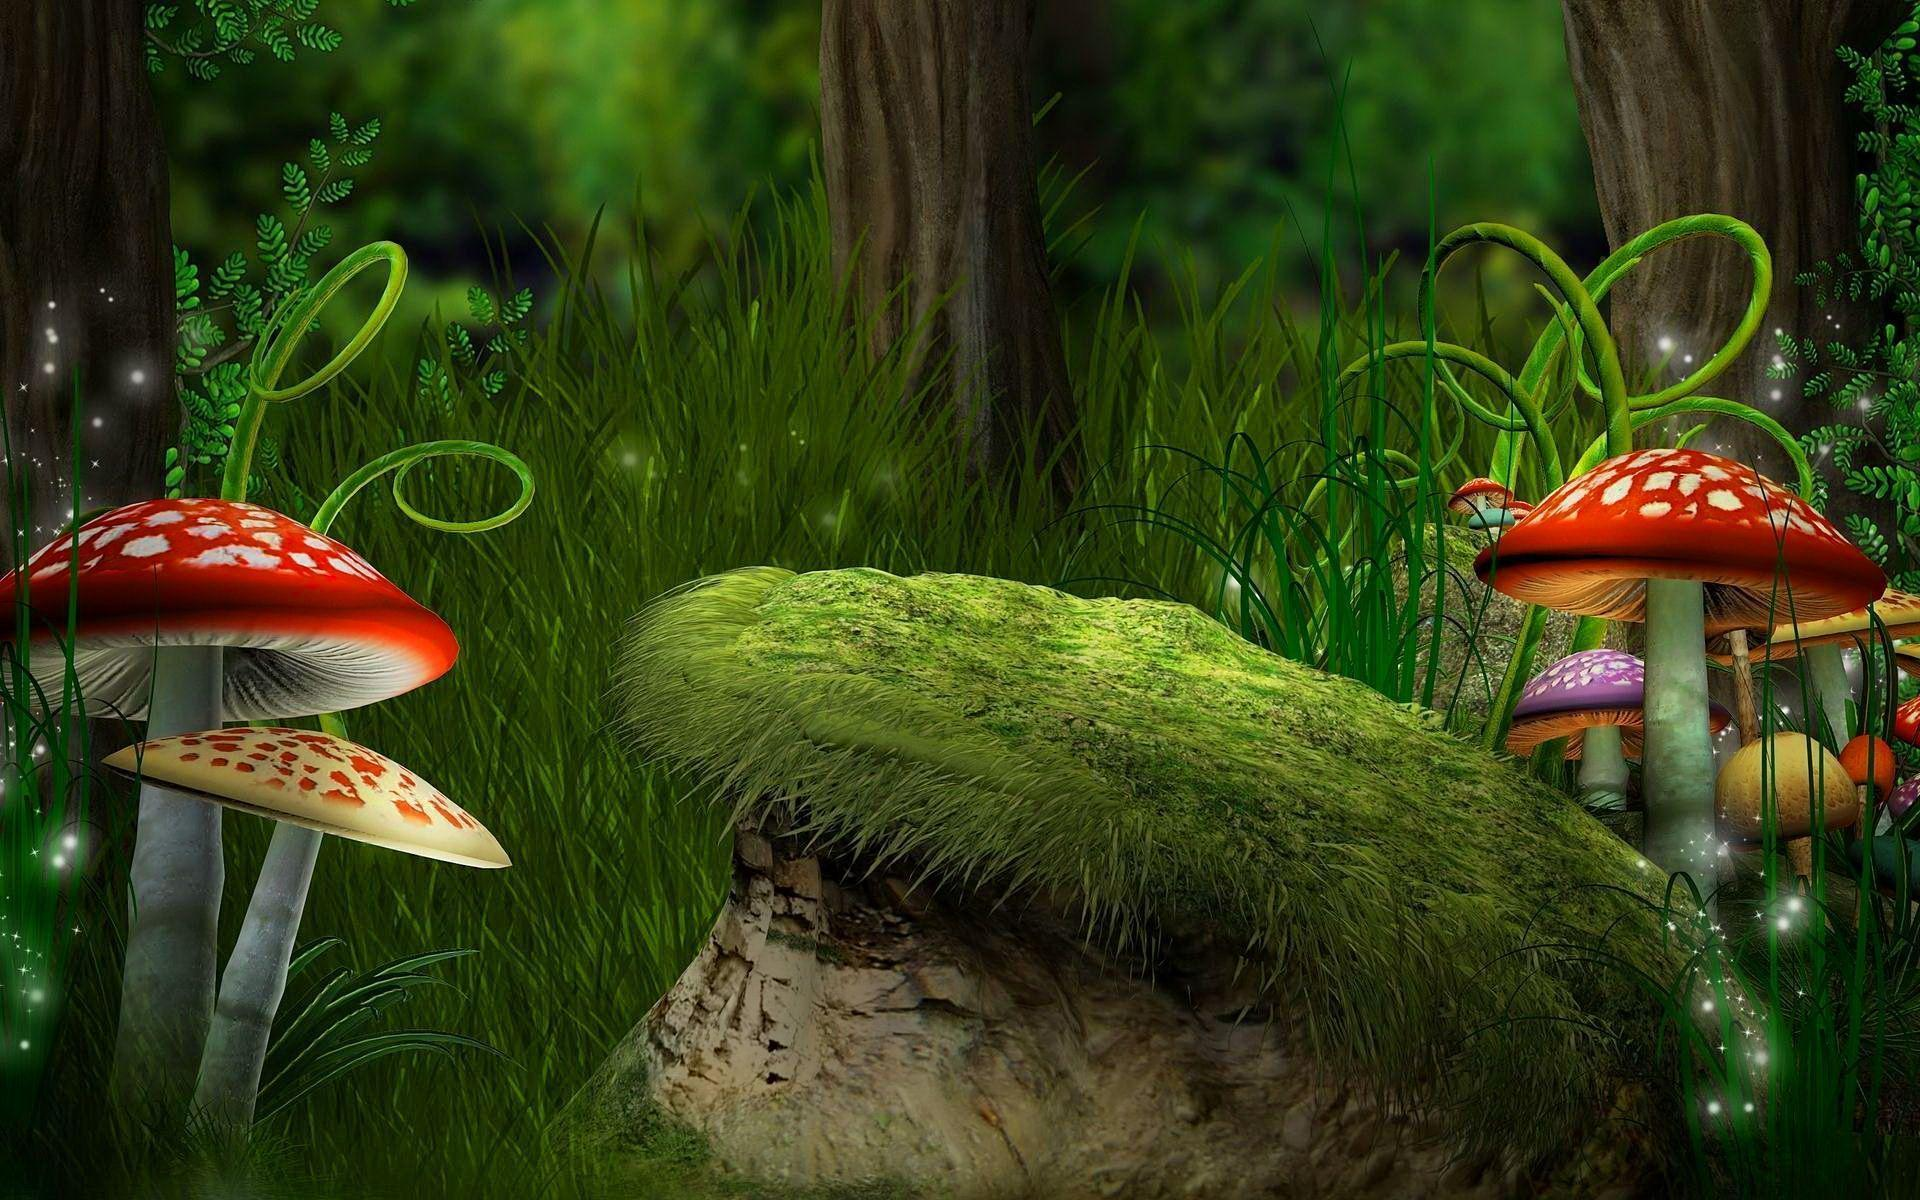 Fantasy forest wallpapers wallpaper cave - Mushroom 3d wallpaper free download ...